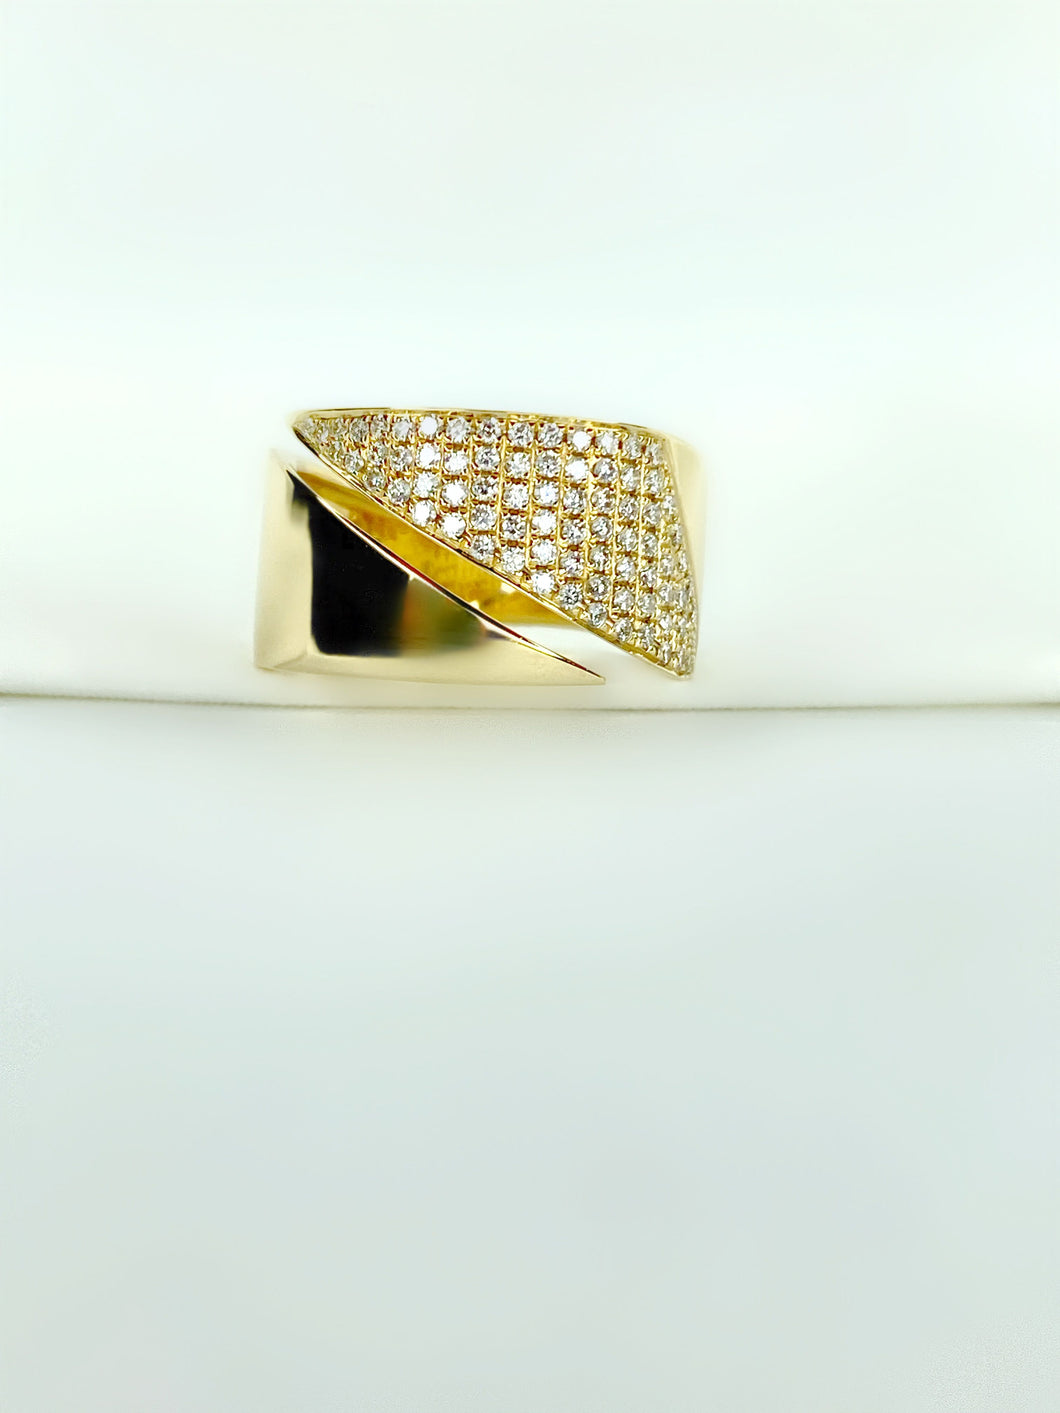 Geometric Pave Diamond Ring